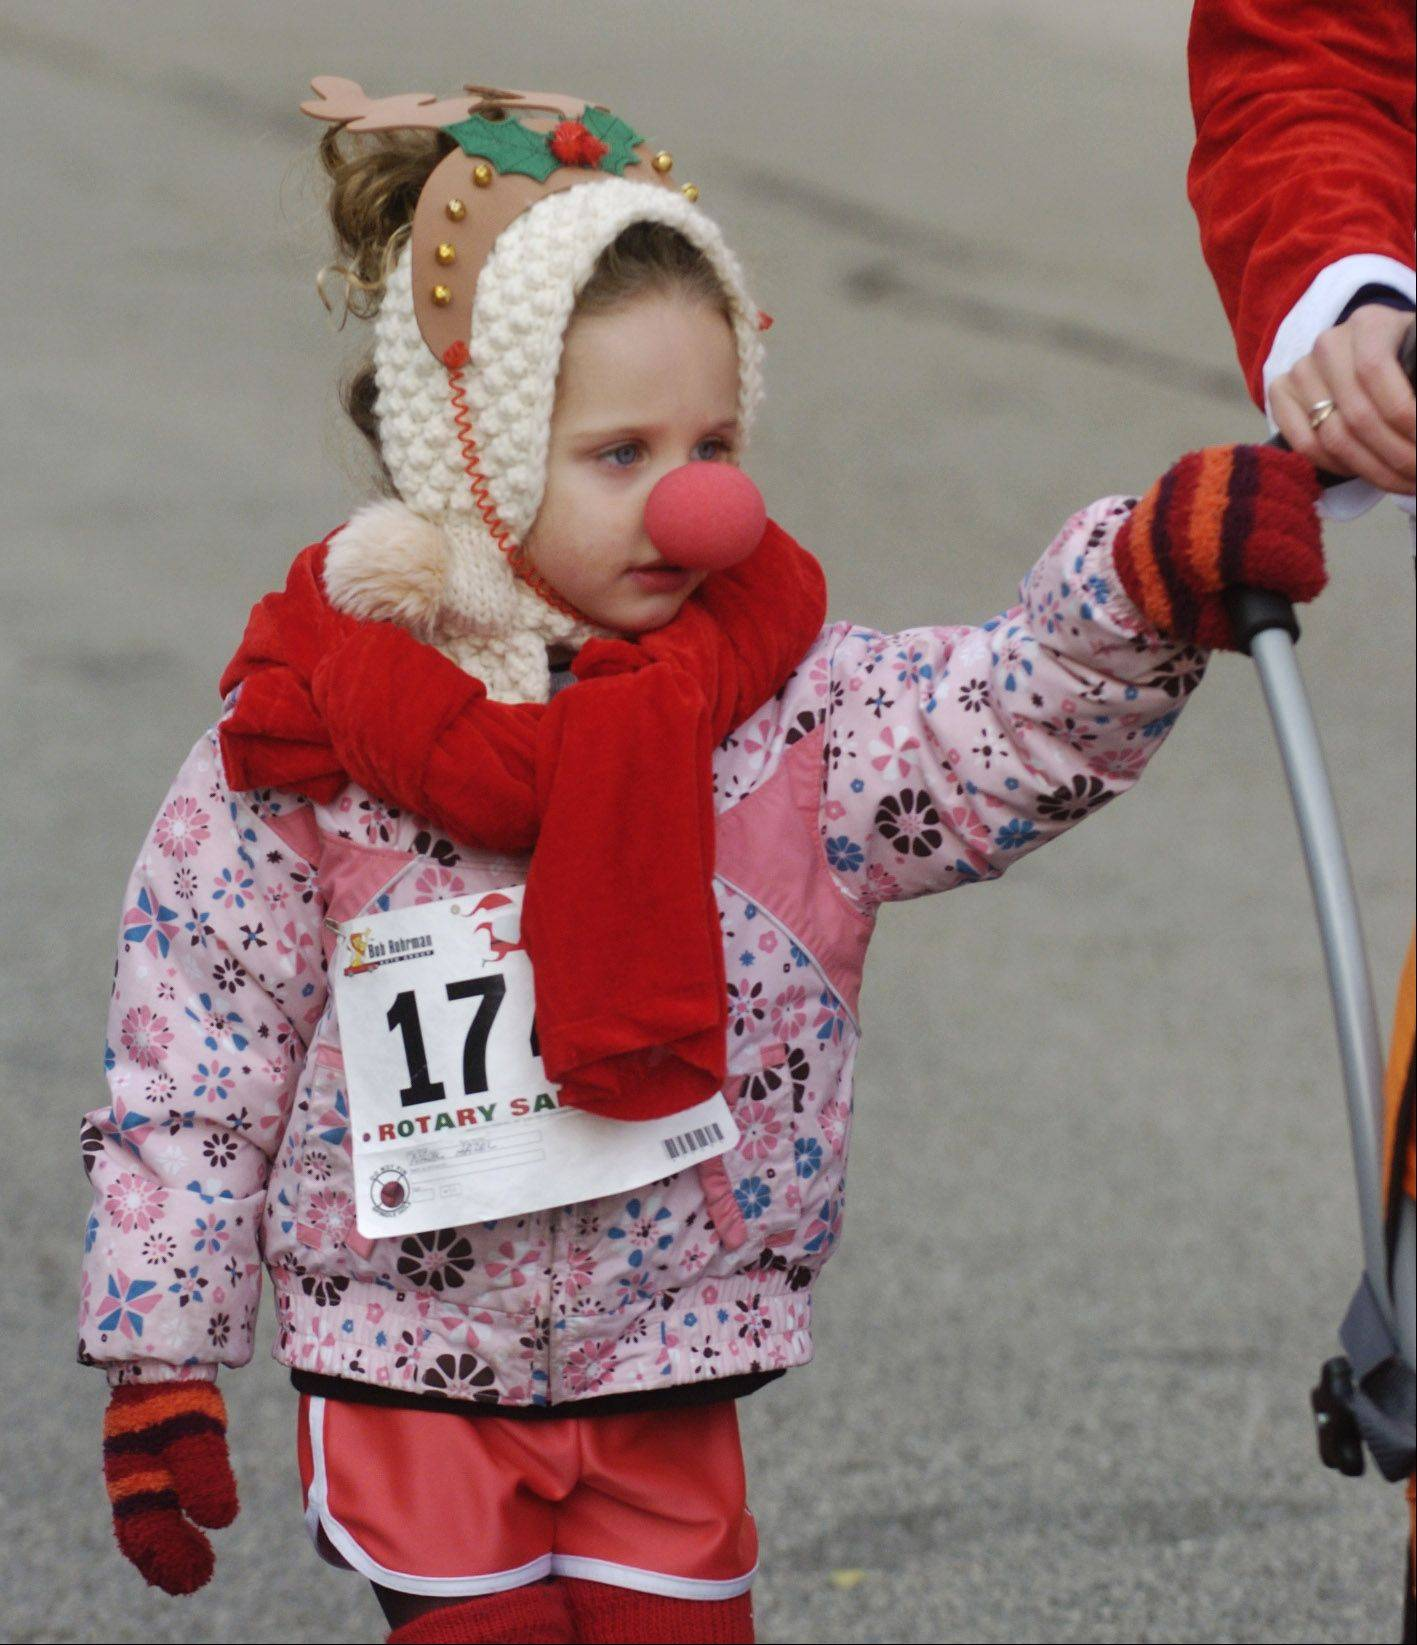 Hazel Nadal, 4, of Arlington Heights walks with her mom, Lydia, prior to Saturday's 5k Santa Run in Arlington Heights.